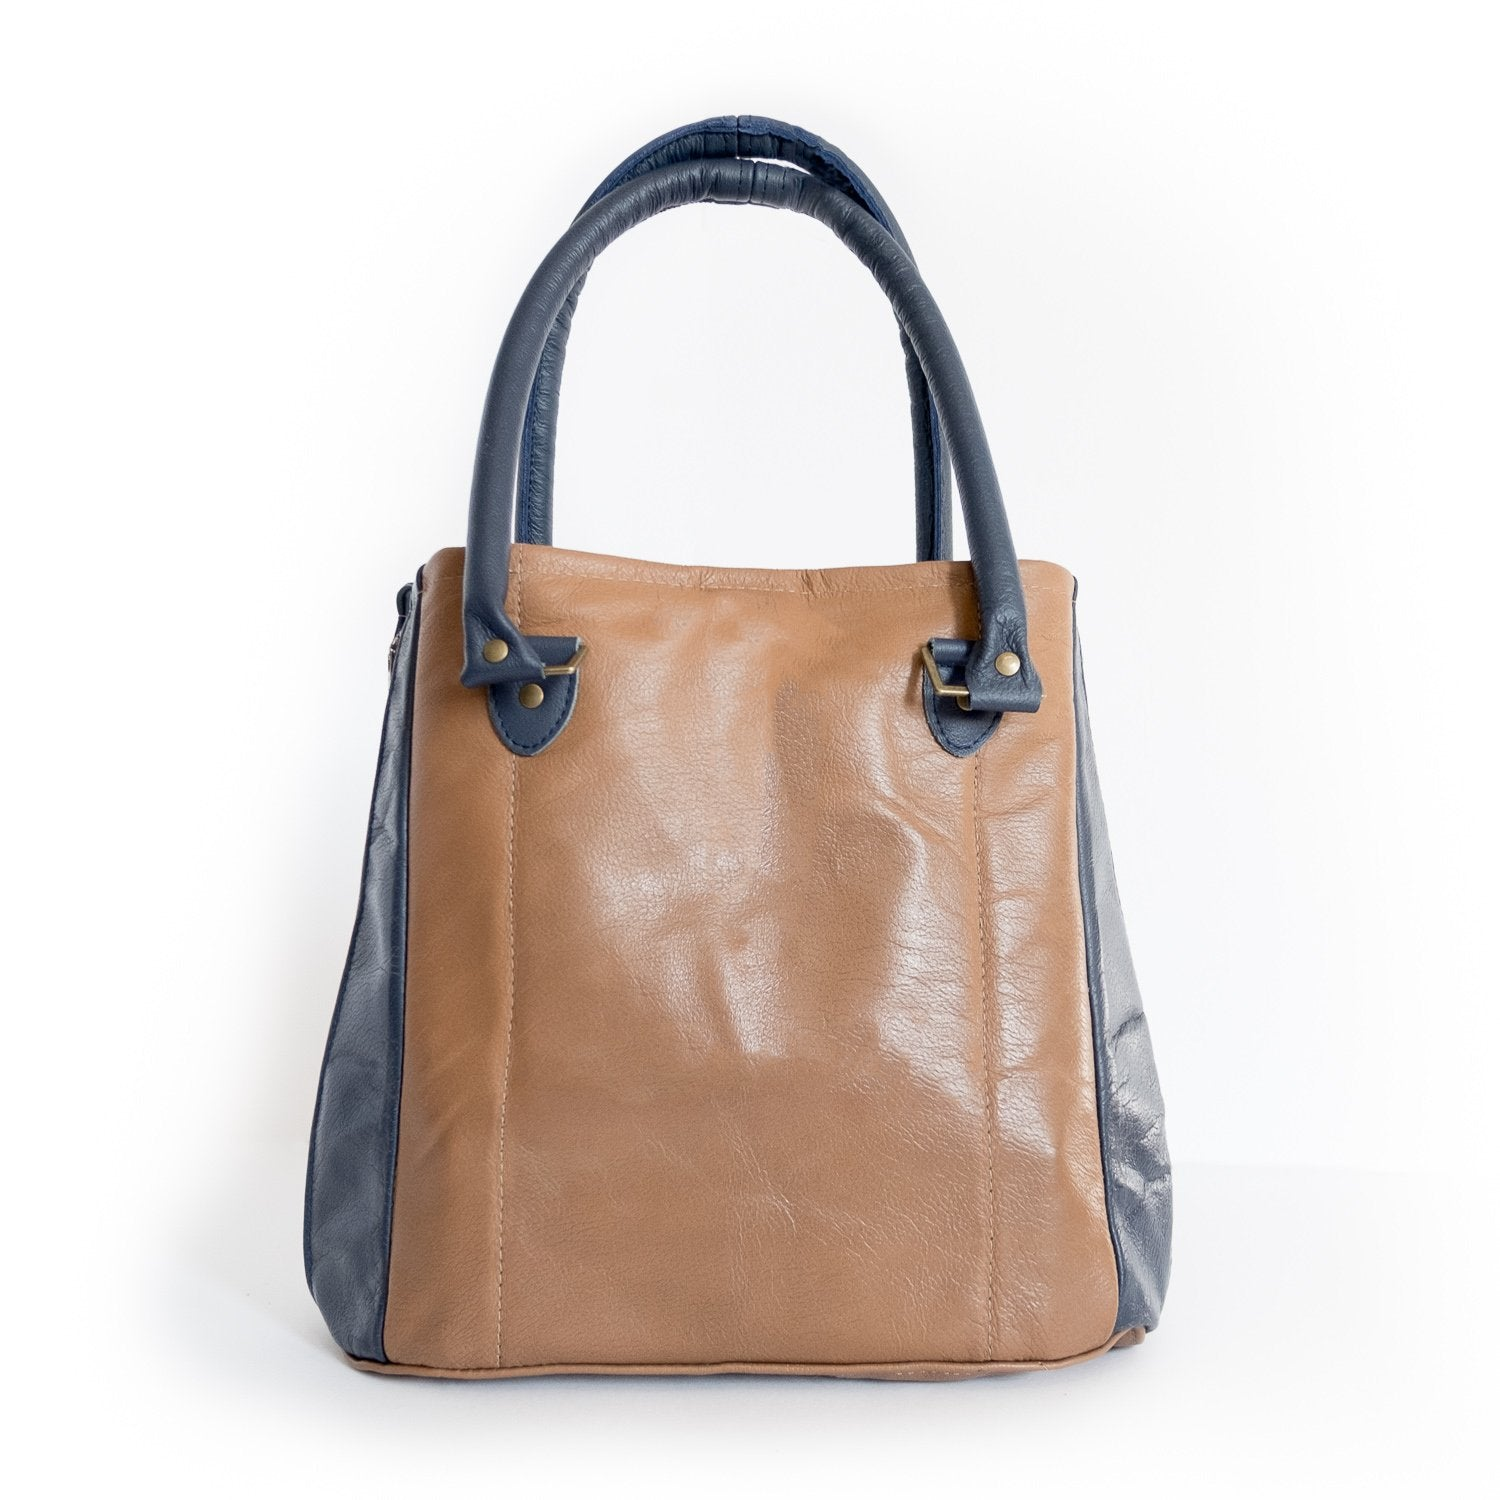 In Flight LUV Convertible Tote Tote Bags - Looptworks